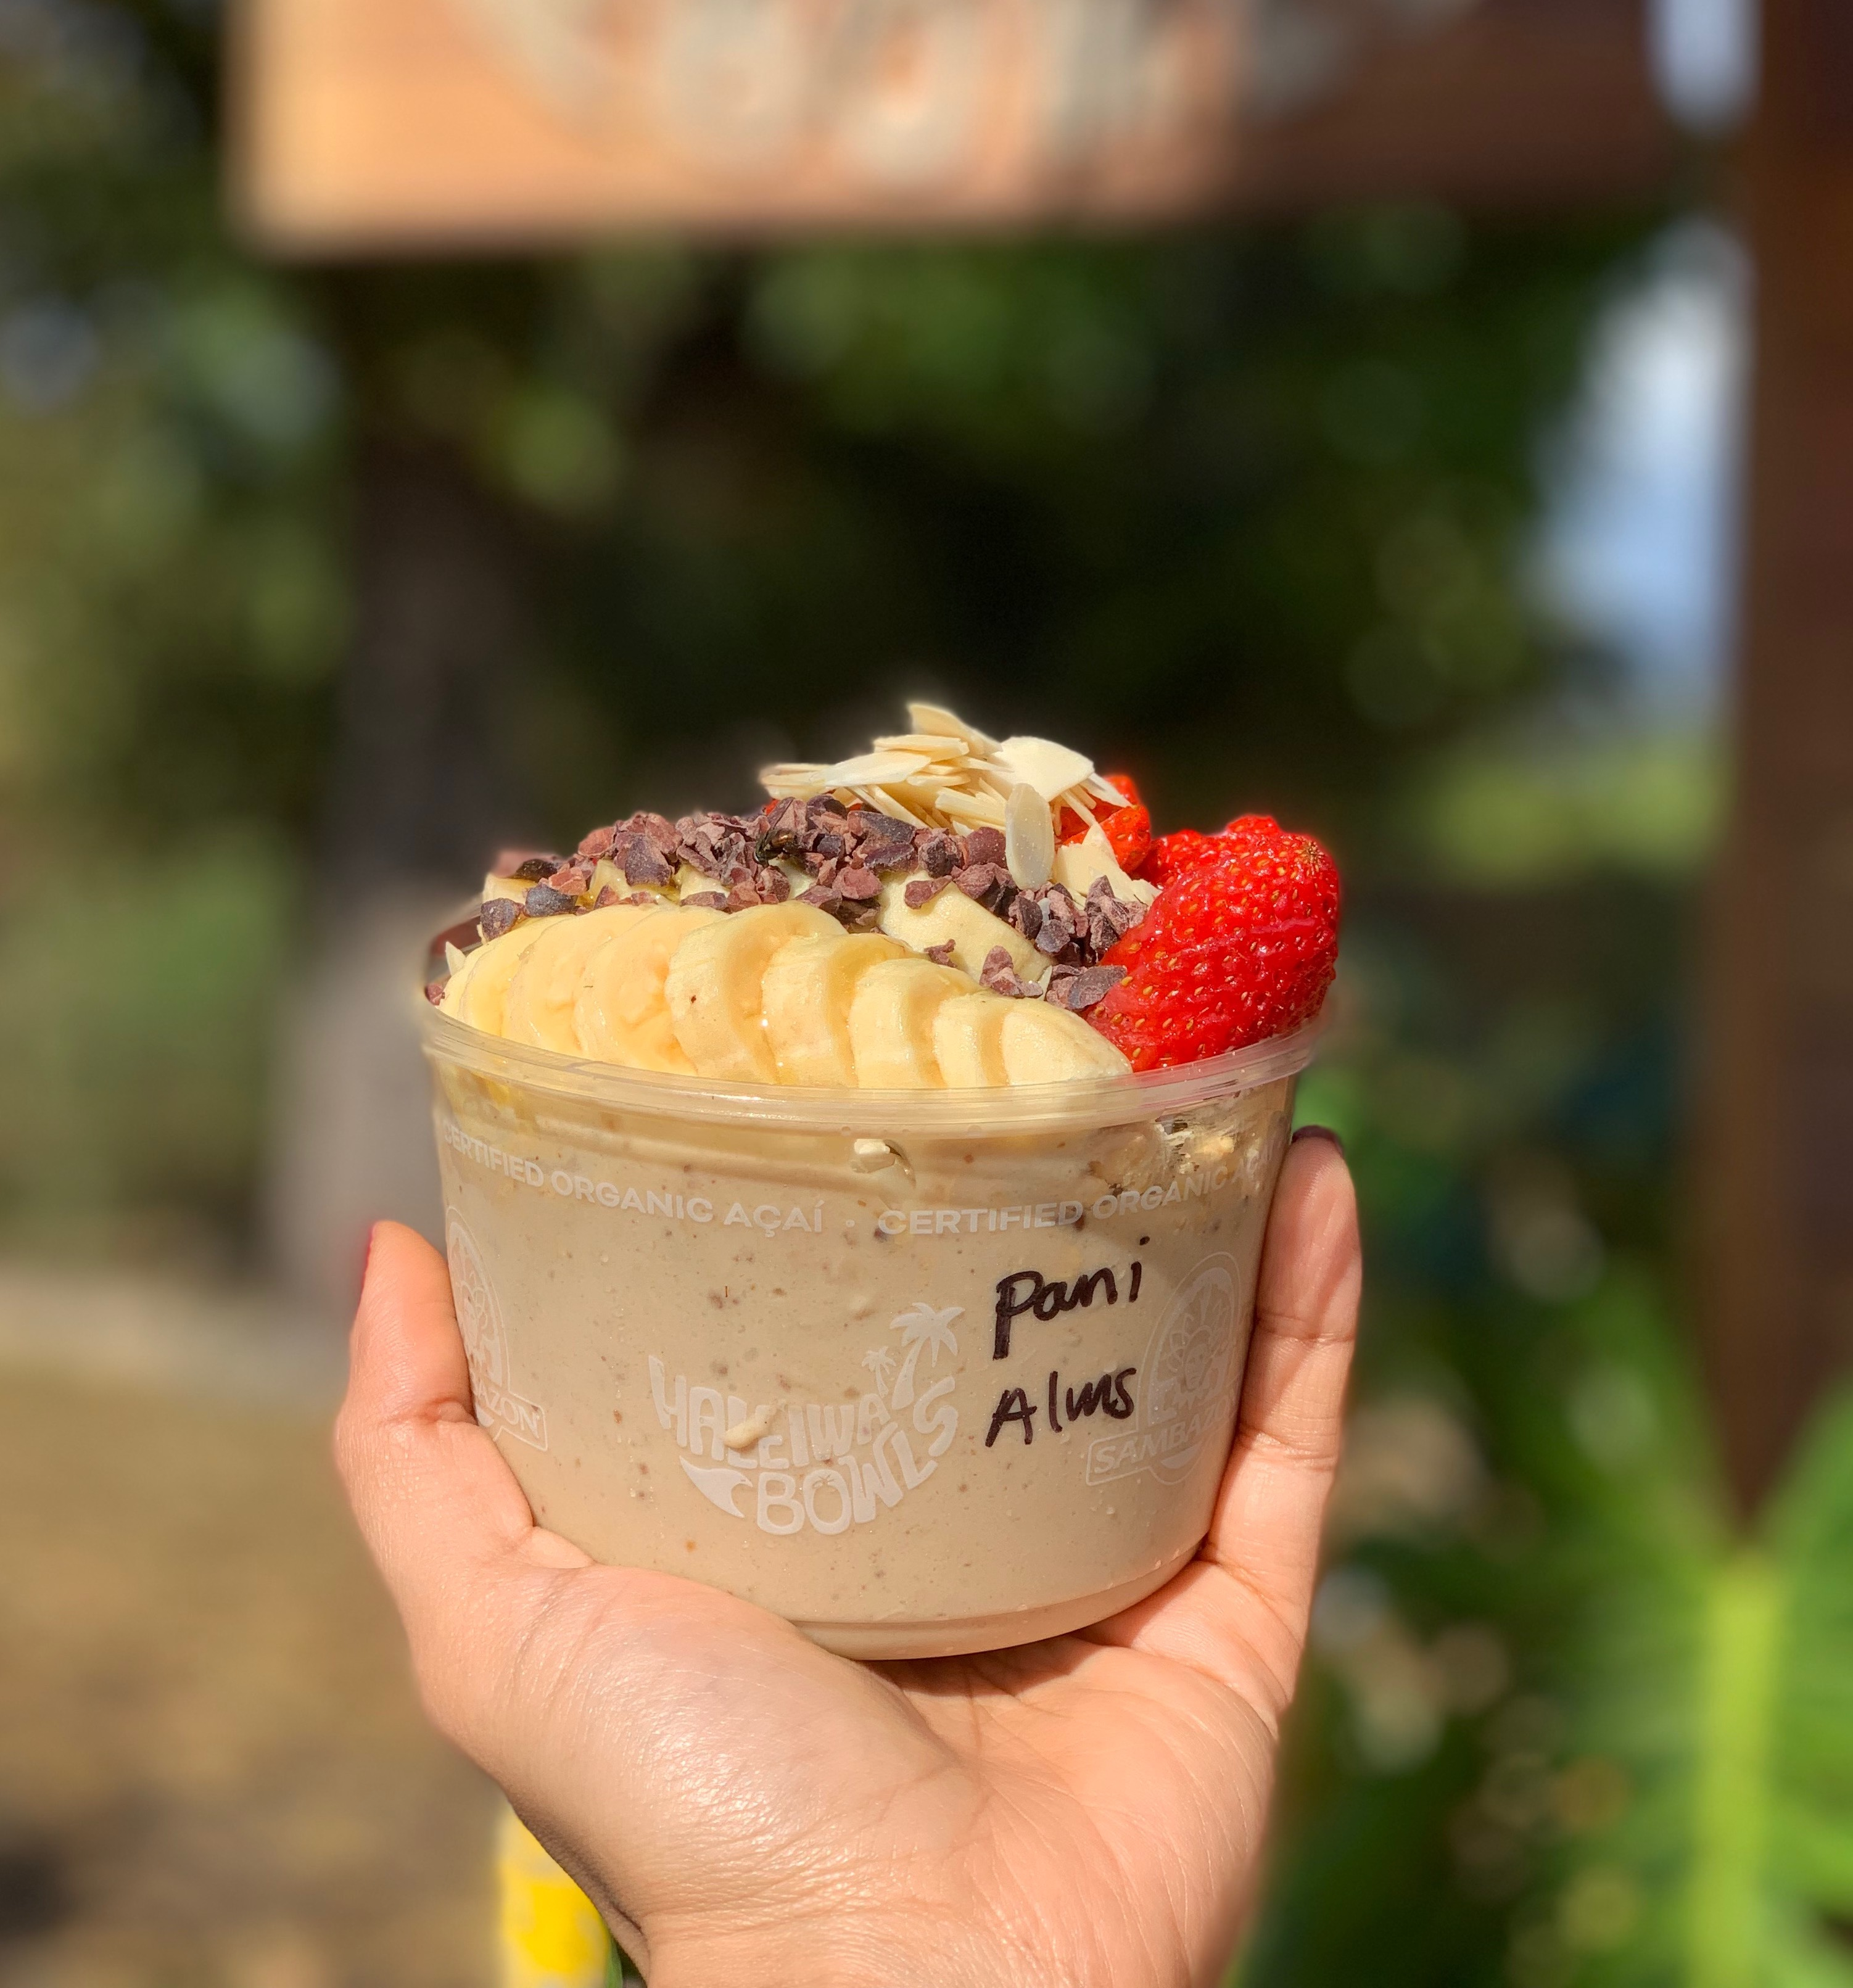 honolulu, waikiki, gorgeous beaches, palm trees, hawaii, sunglasses, hang loose, oahu, haleiwa bowl, acai bowl